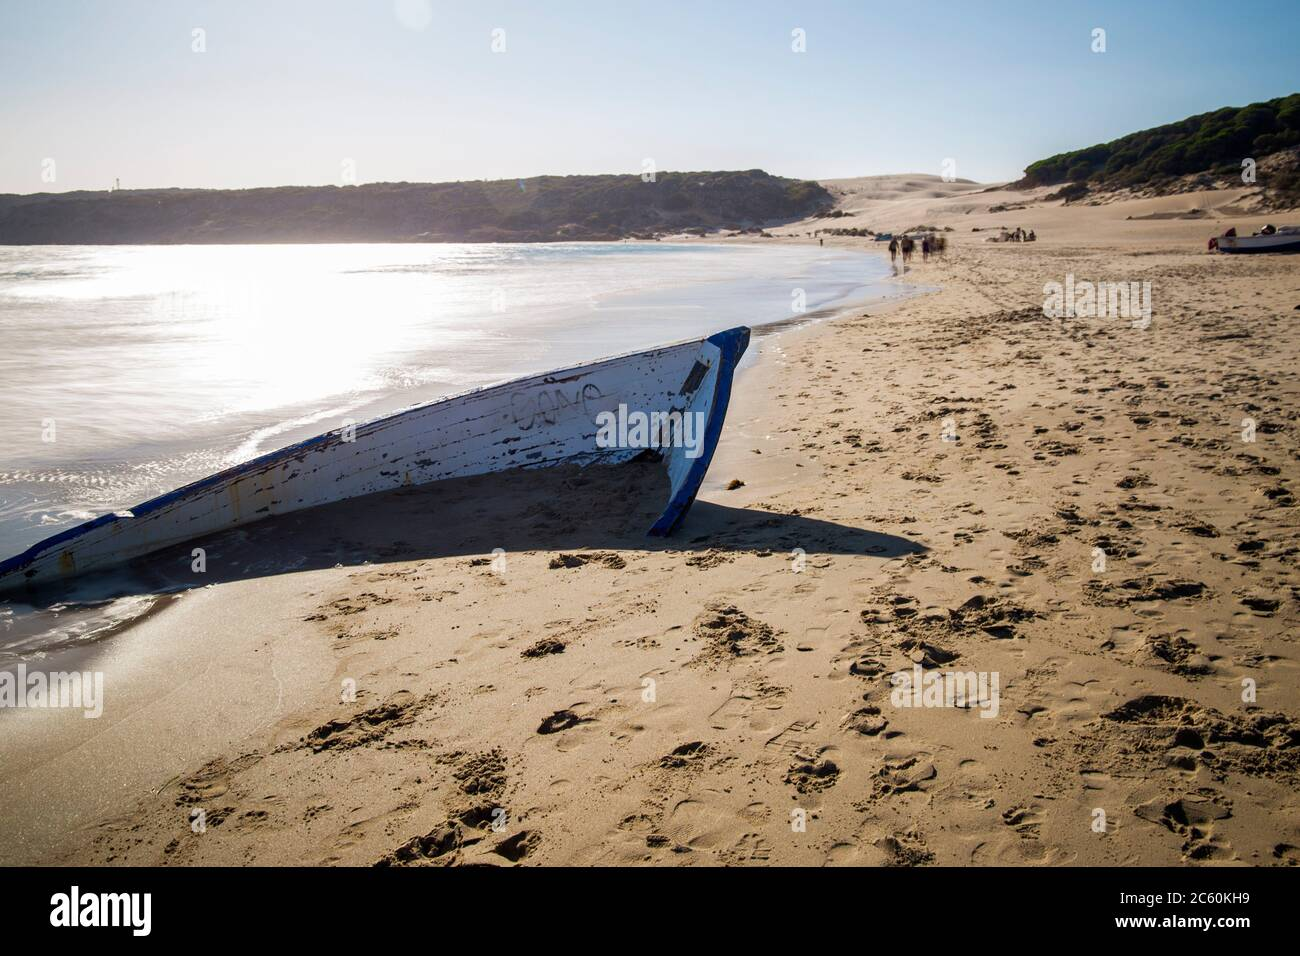 Patera, ruined boat in Bolonia beach in Cadiz province Andalusia Spain. Stock Photo